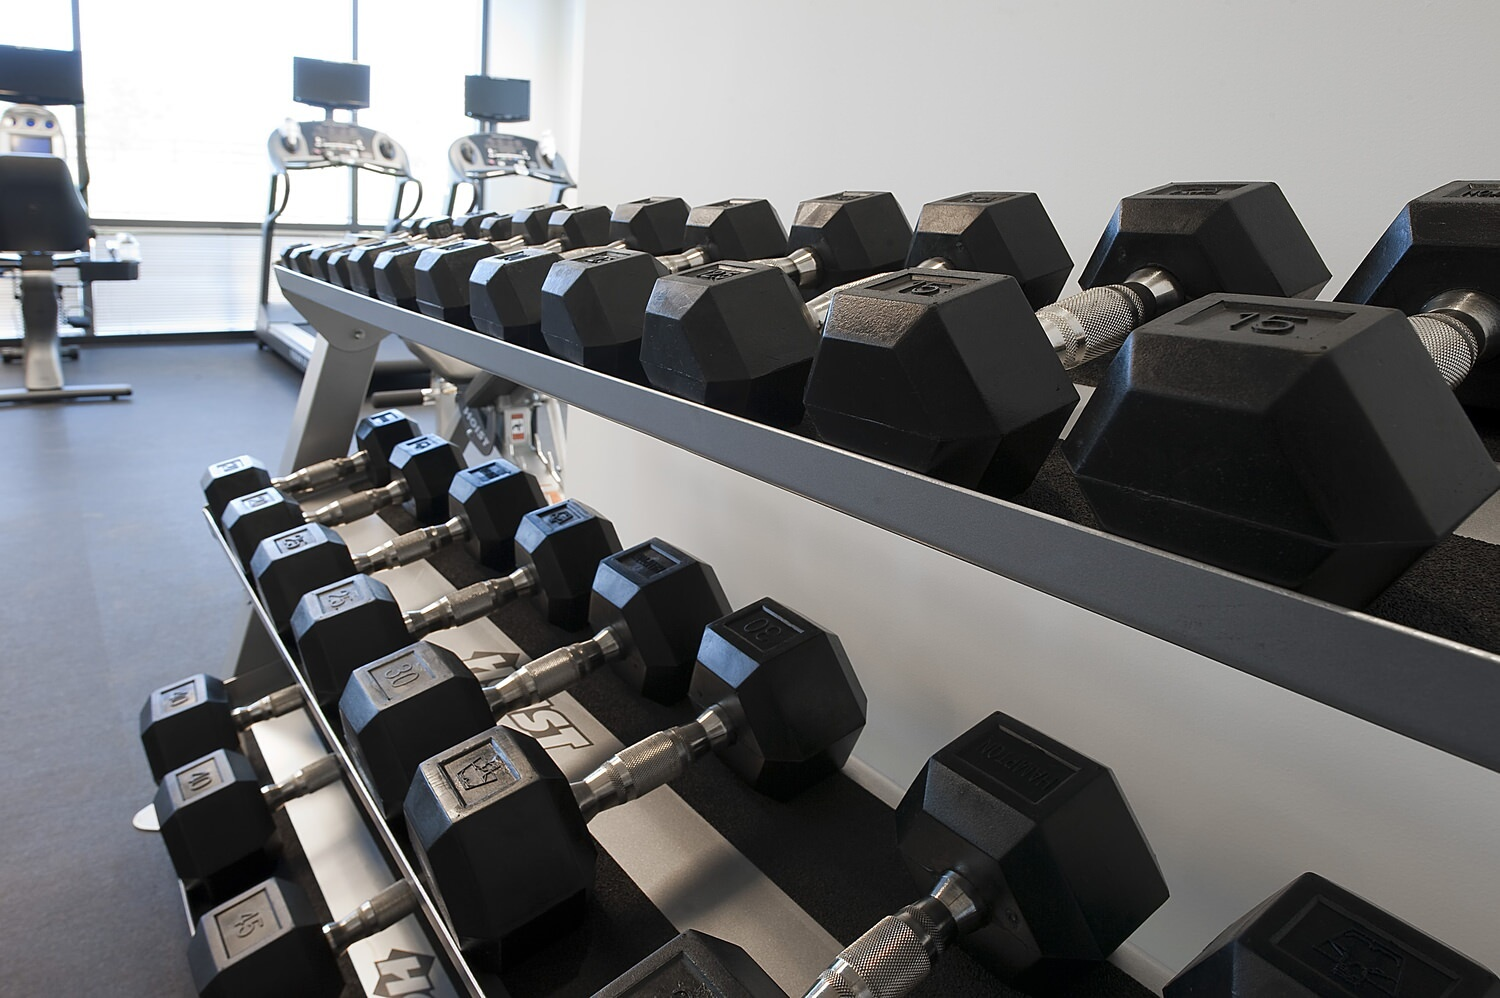 A gym that has barbells in a barbell rack and some treadmills and exercise machines behind them.